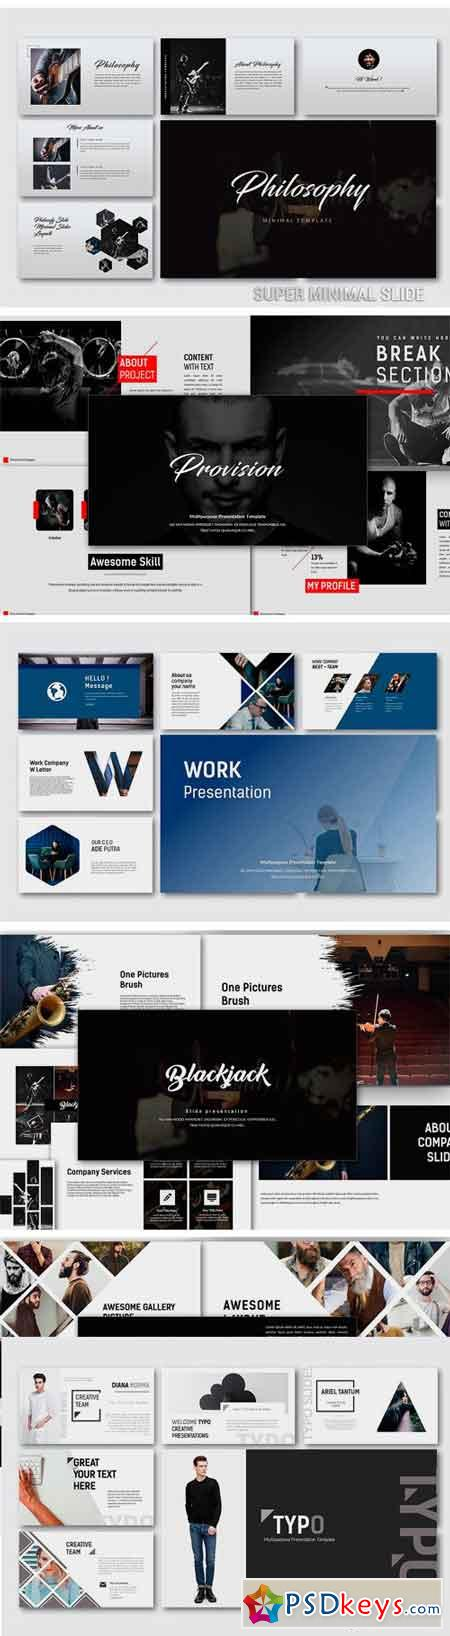 Entire Shop Premium Slide Powerpoint 2068903